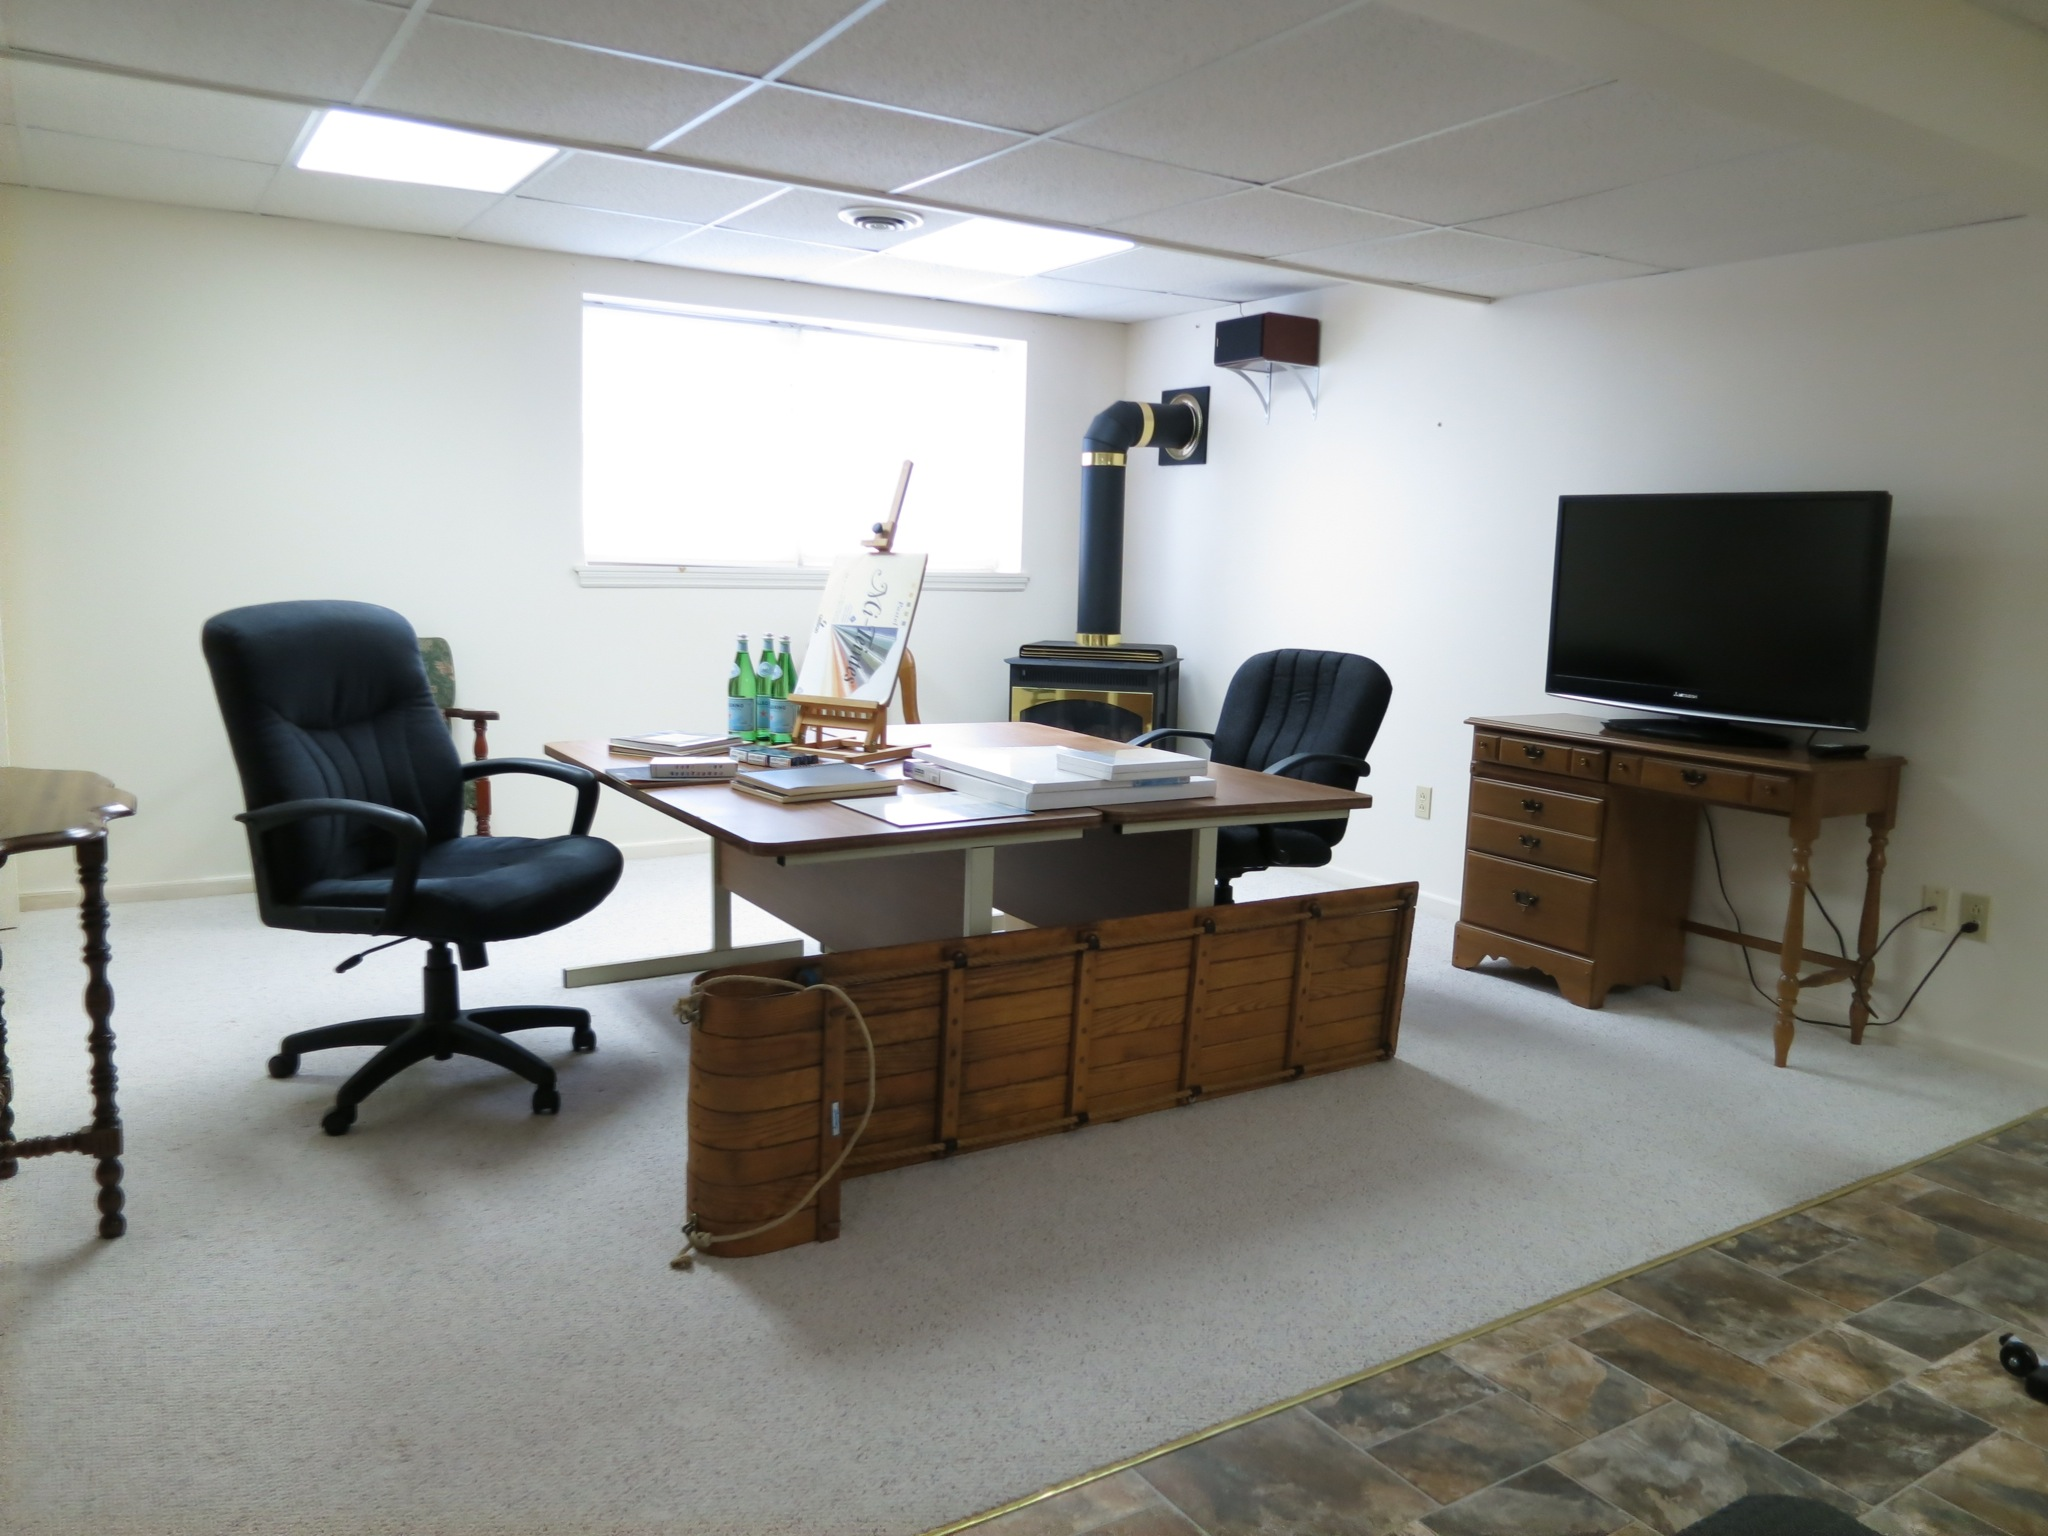 The lower level offers unfinished mechanicals / storage / workspace and a finished bonus area.